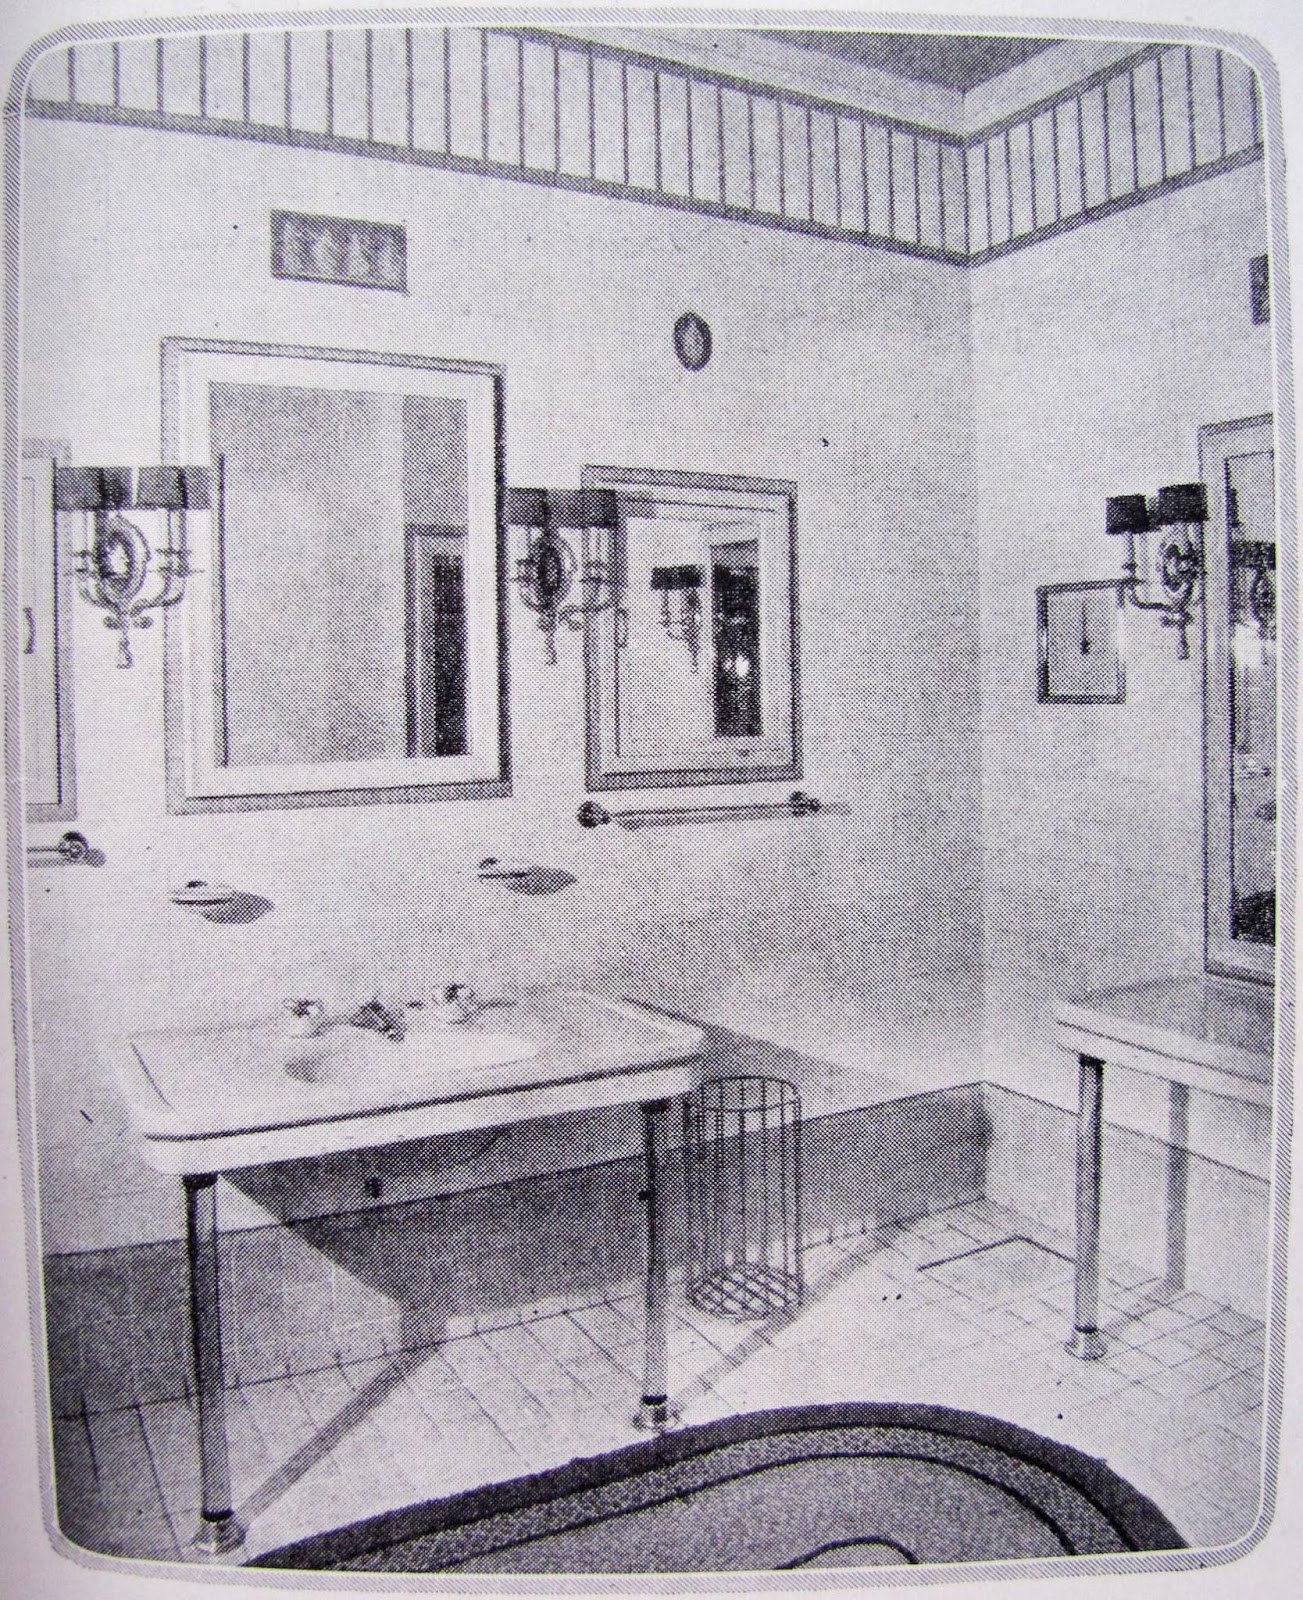 Studio garden bungalow 1920s vintage bathroom styles for Bathroom ideas 1920 s